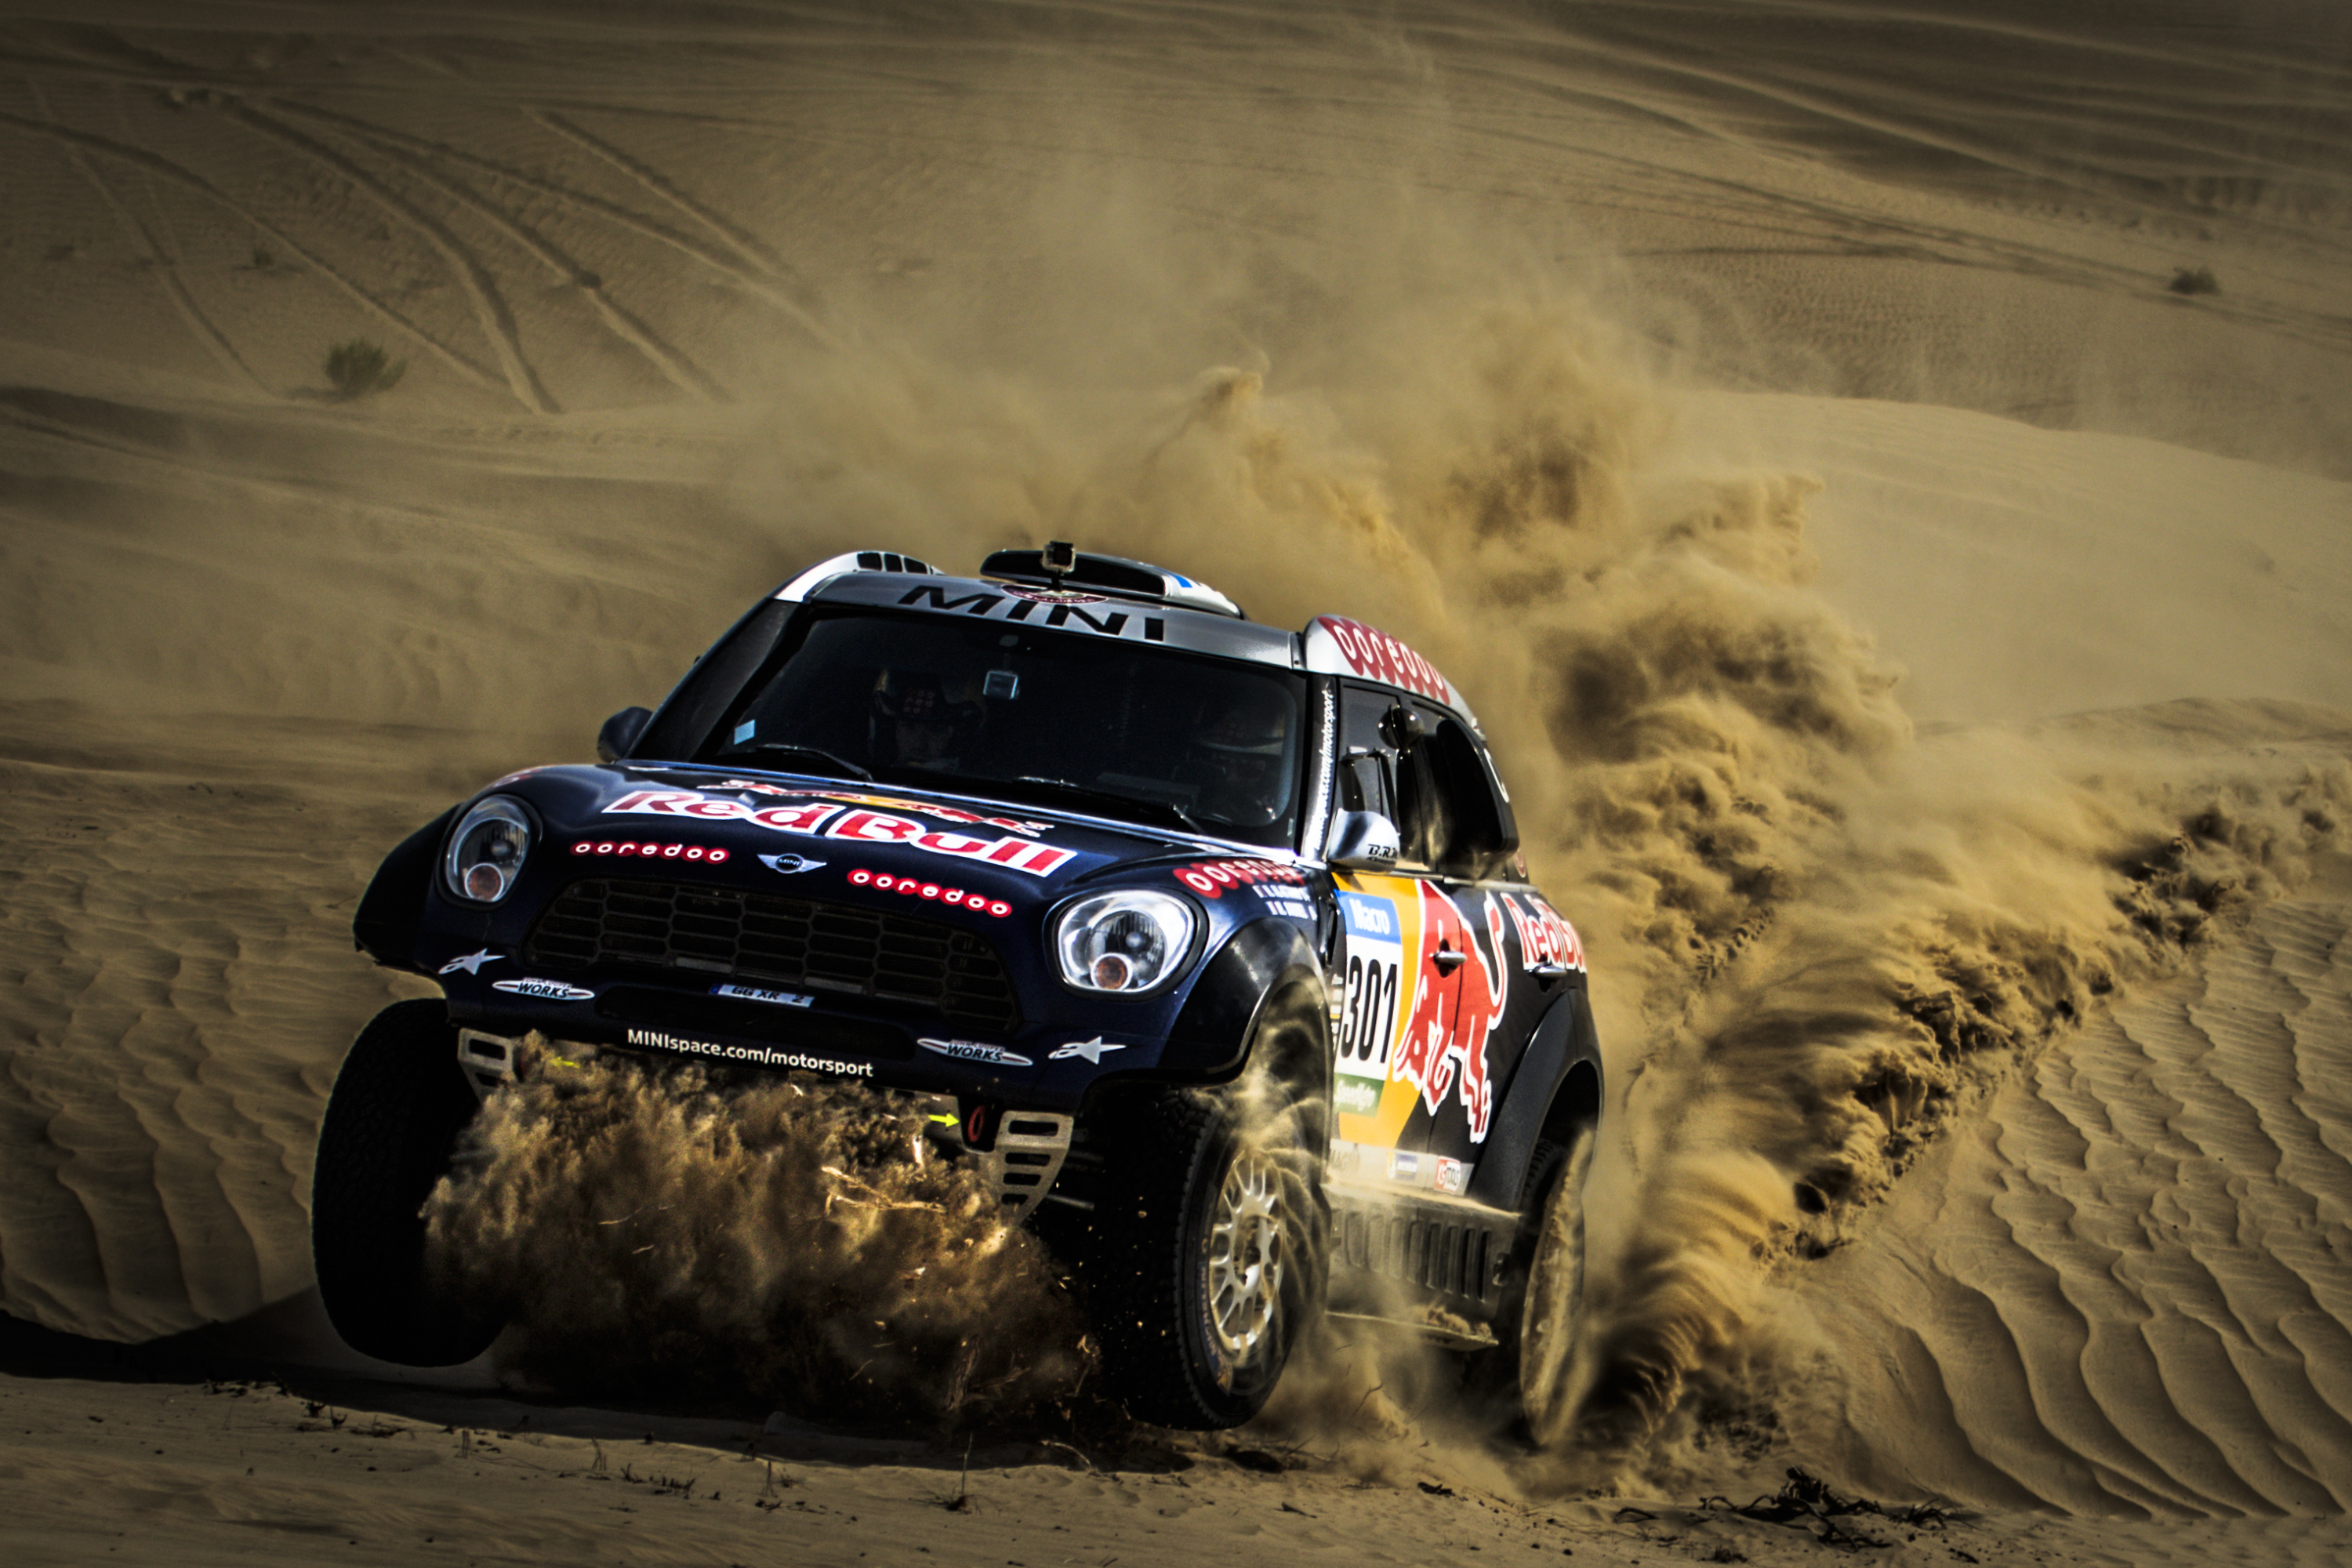 ABU DHABI DESERT CHALLENGE 2015: QATAR RED BULL RALLY TEAM- DAKAR WINNERS NASSER AL-ATTIYAH AND MATHIEU BAUMEL BACK IN ABU DHABI ACTION